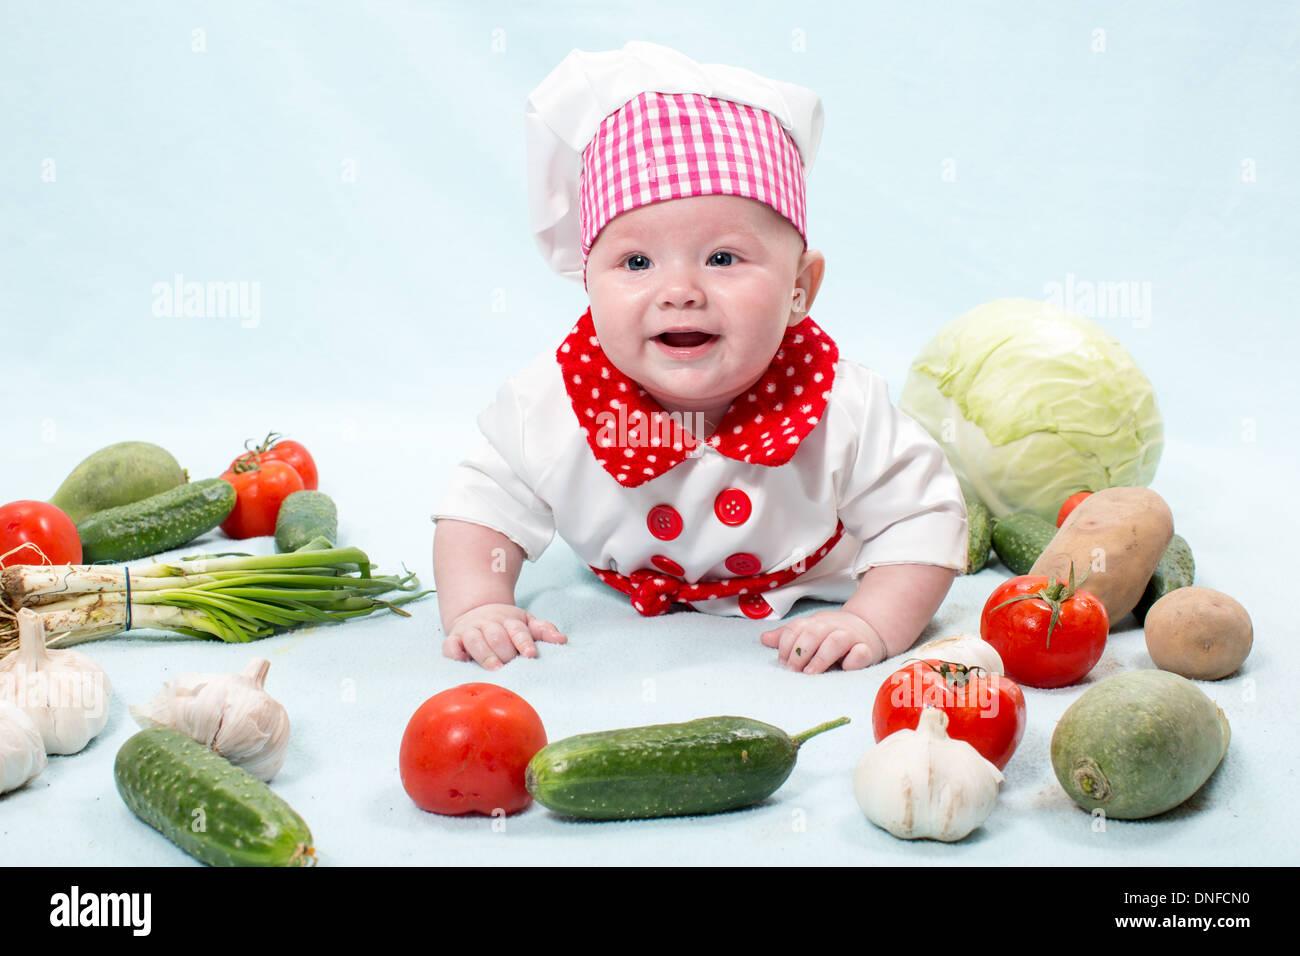 fdb0ede505c Baby cook girl wearing chef hat with fresh vegetables. Use it for a child